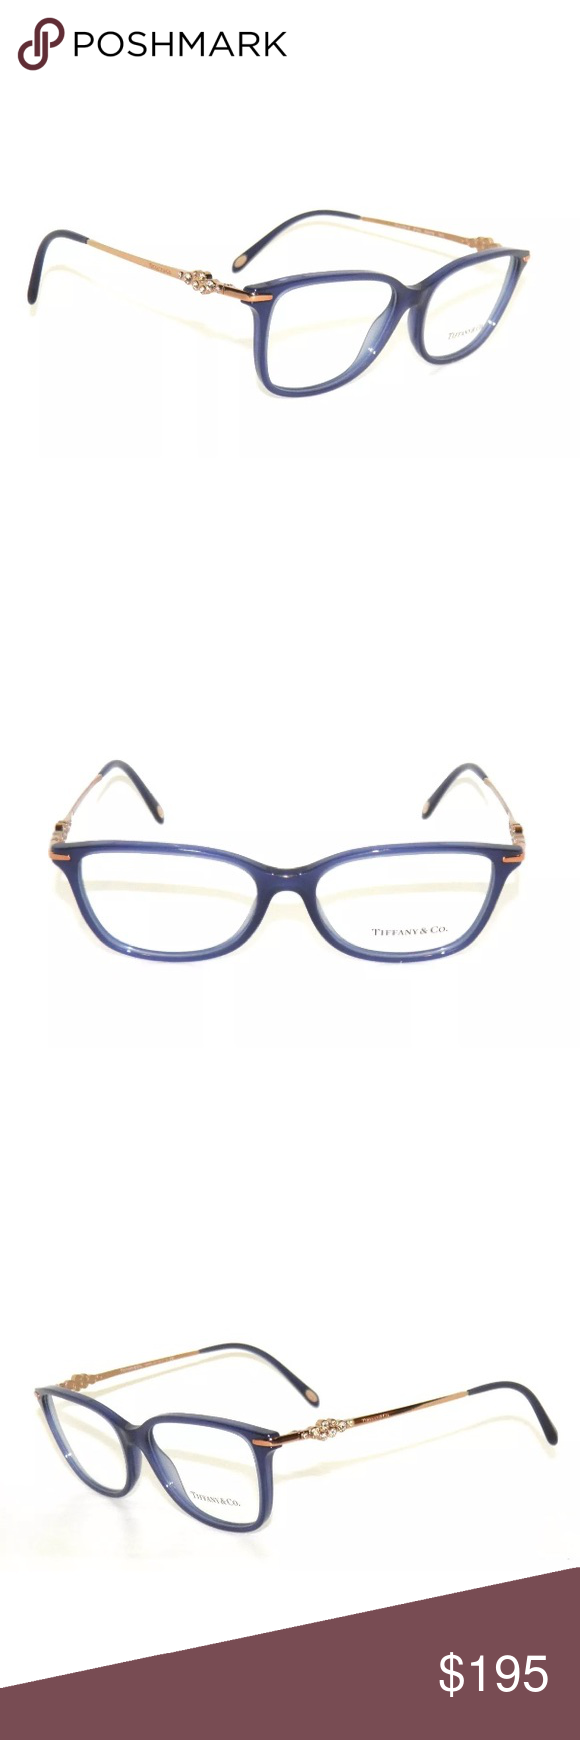 a48e80d2afd9 Tiffany   Co Eyeglasses Blue Frame In excellent condition. Comes with  Tiffany case. Authentic Tiffany   Co. Accessories Glasses